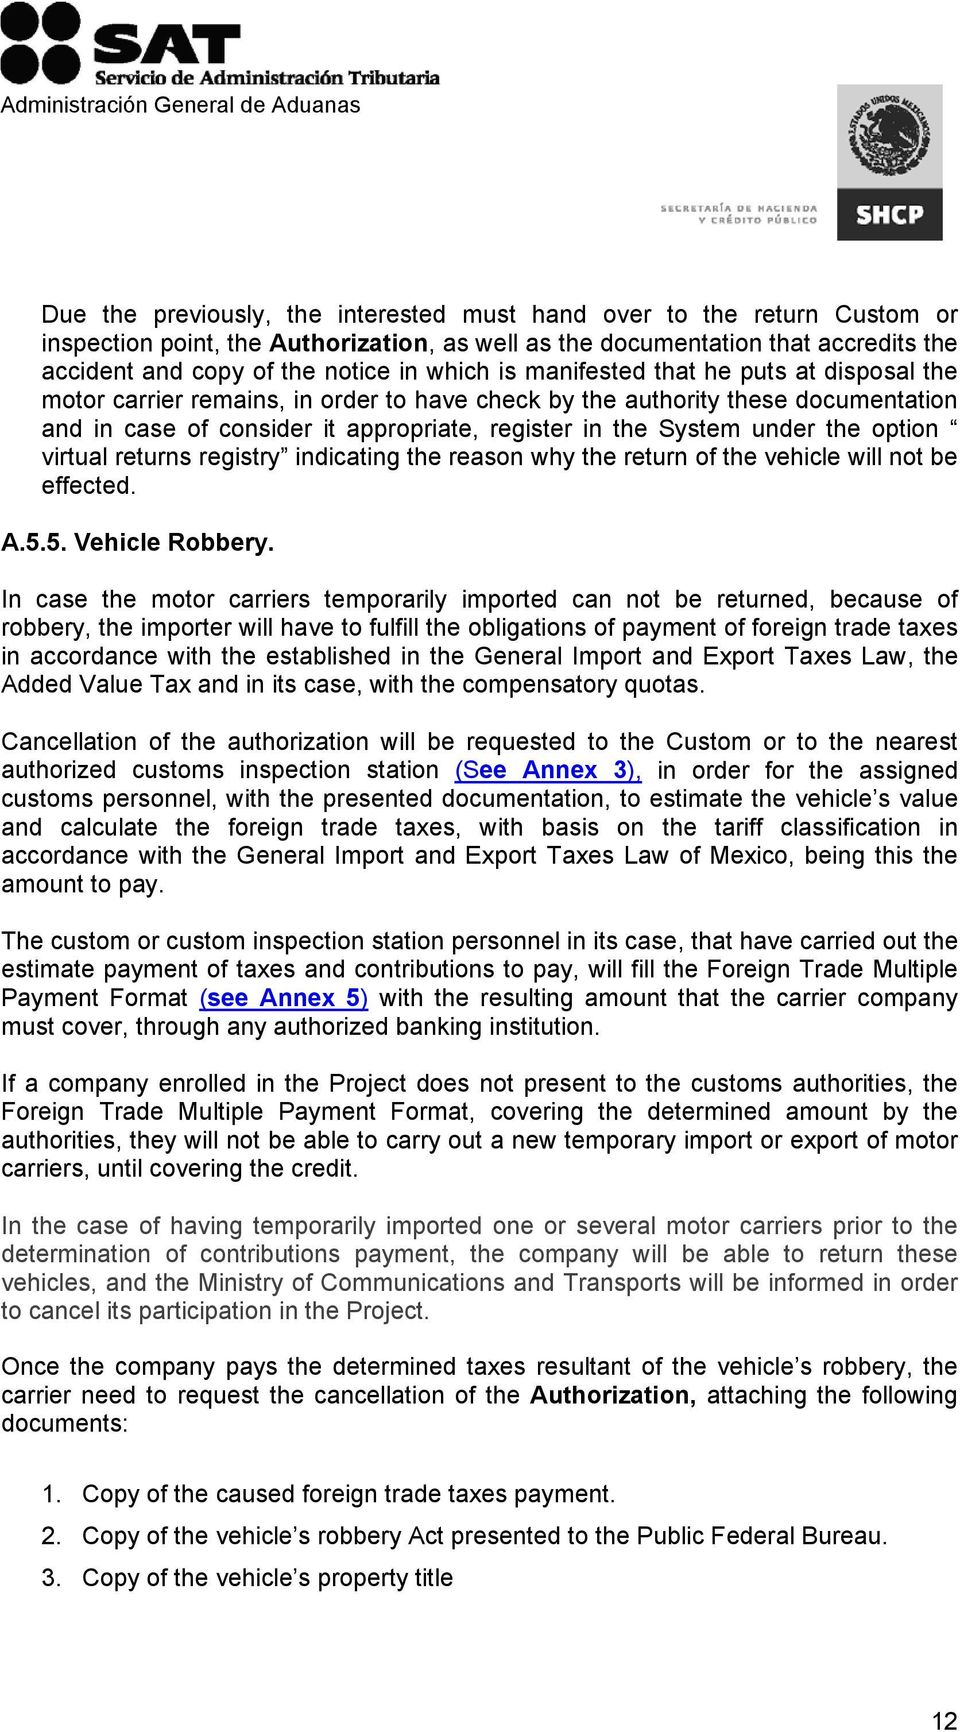 option virtual returns registry indicating the reason why the return of the vehicle will not be effected. A.5.5. Vehicle Robbery.